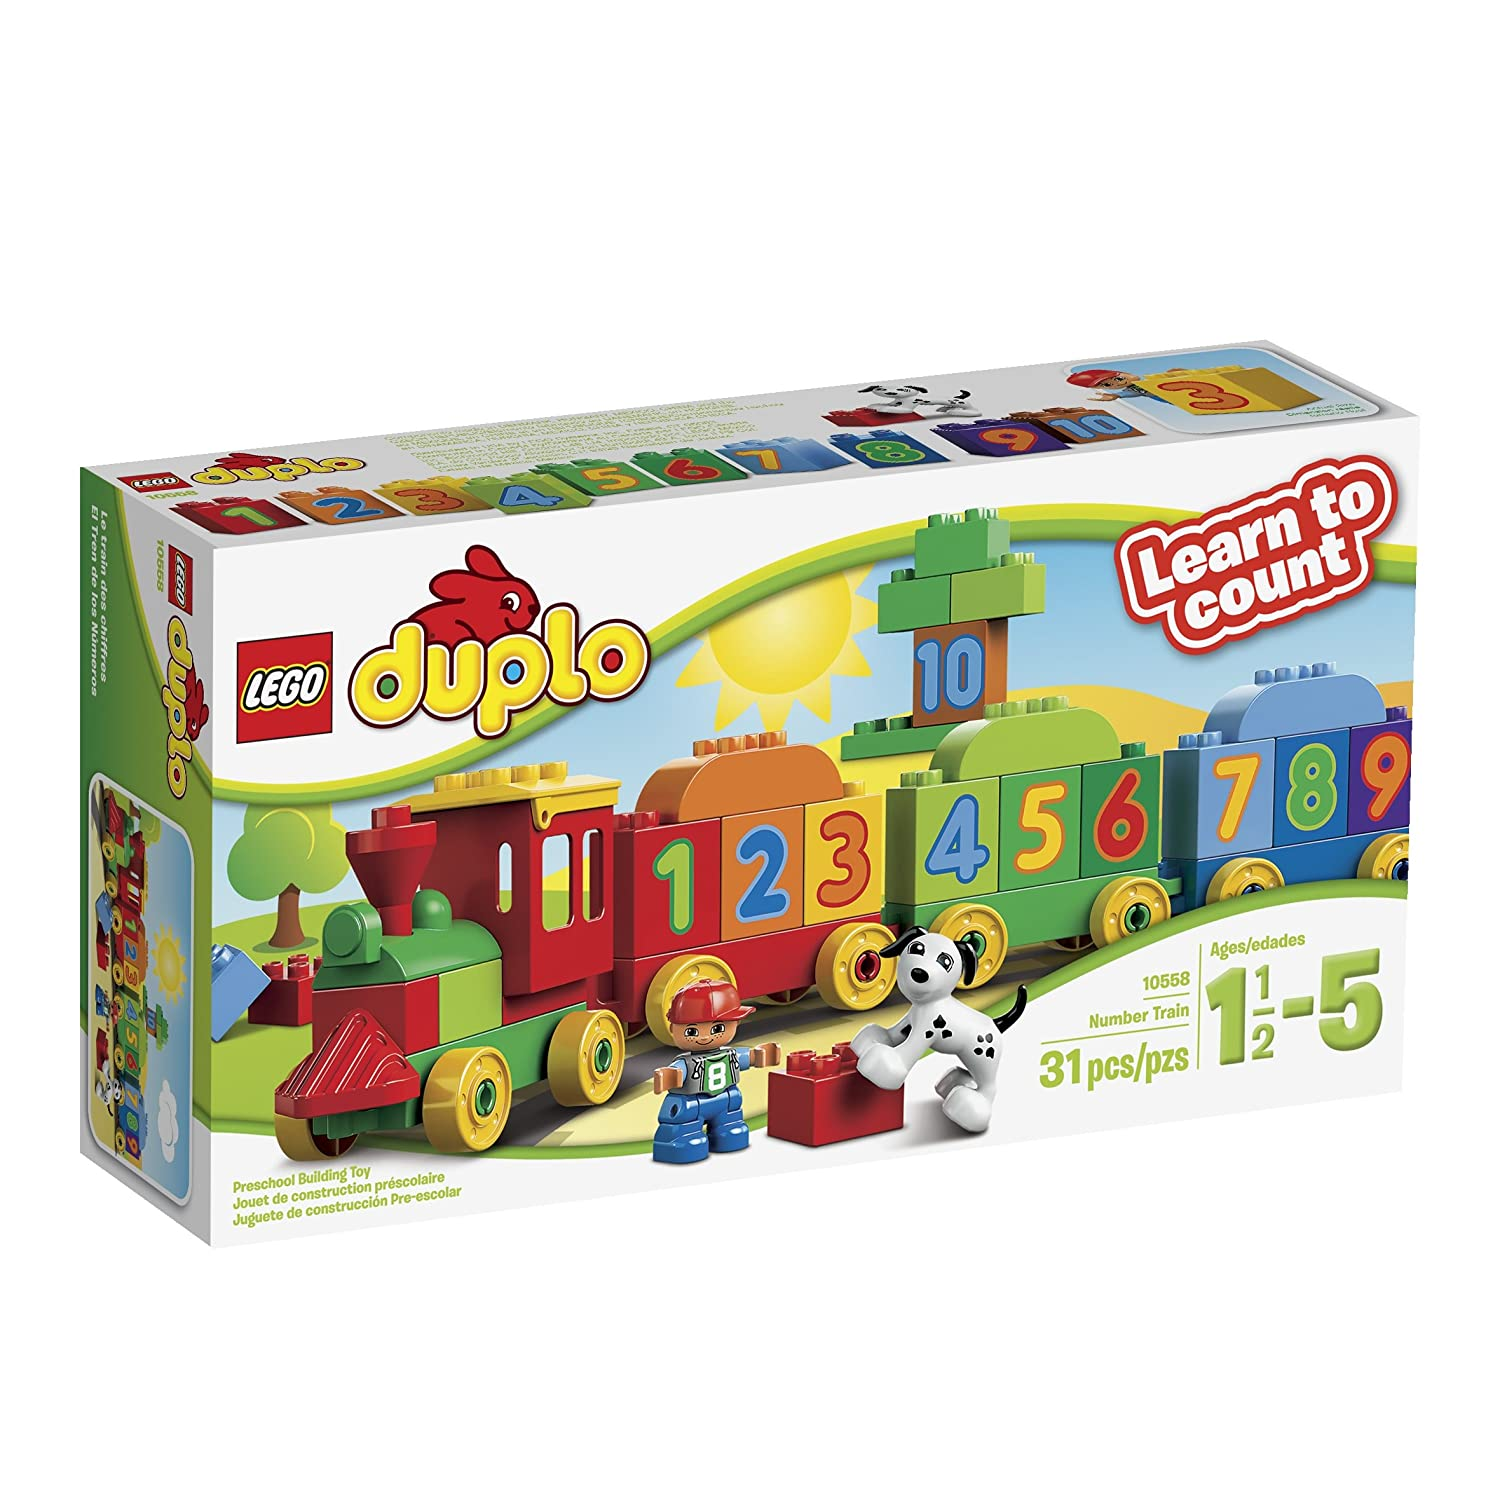 LEGO DUPLO My First Number Train 10847 Preschool Toy 6174760